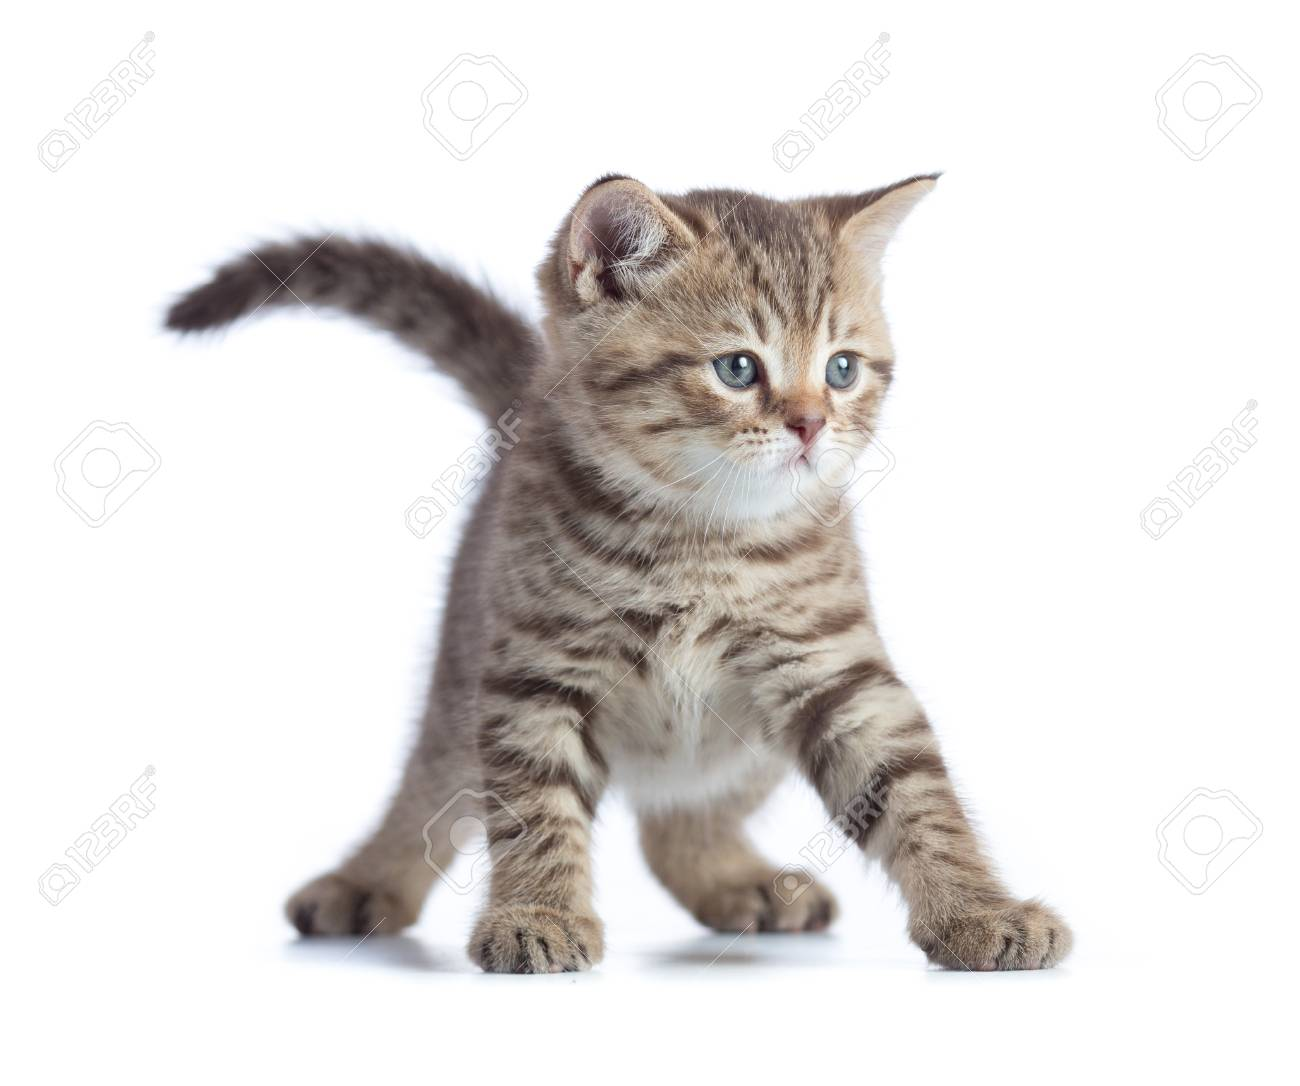 Image of: Pictures Stock Photo Young Funny Cat Front View Standing Isolated On The White Background 123rfcom Young Funny Cat Front View Standing Isolated On The White Background